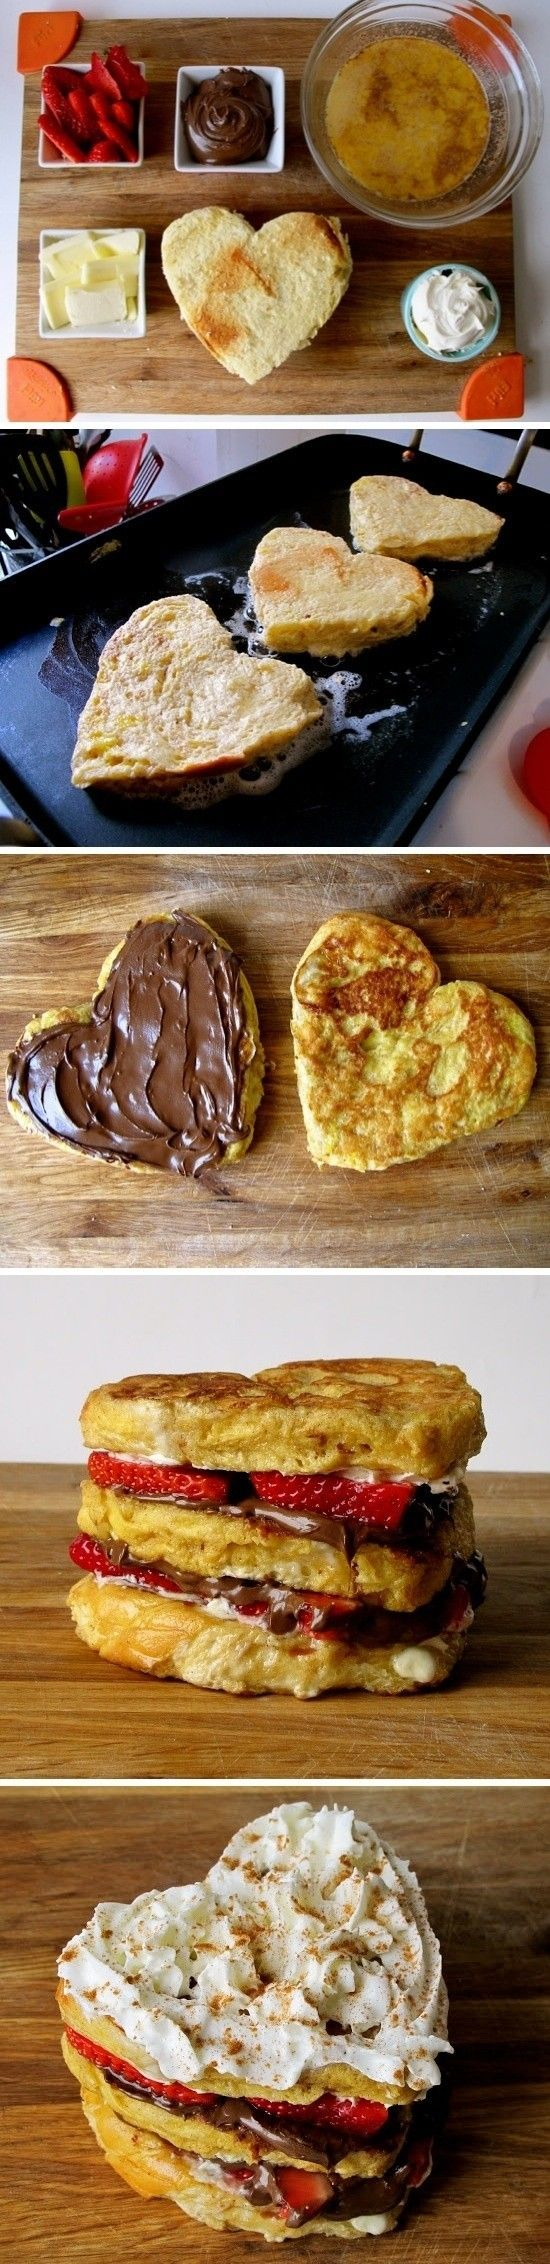 Valentines Breakfast Tradition for my kids....This looks way prettier than the mess I made last year so I will be using this look instead!!